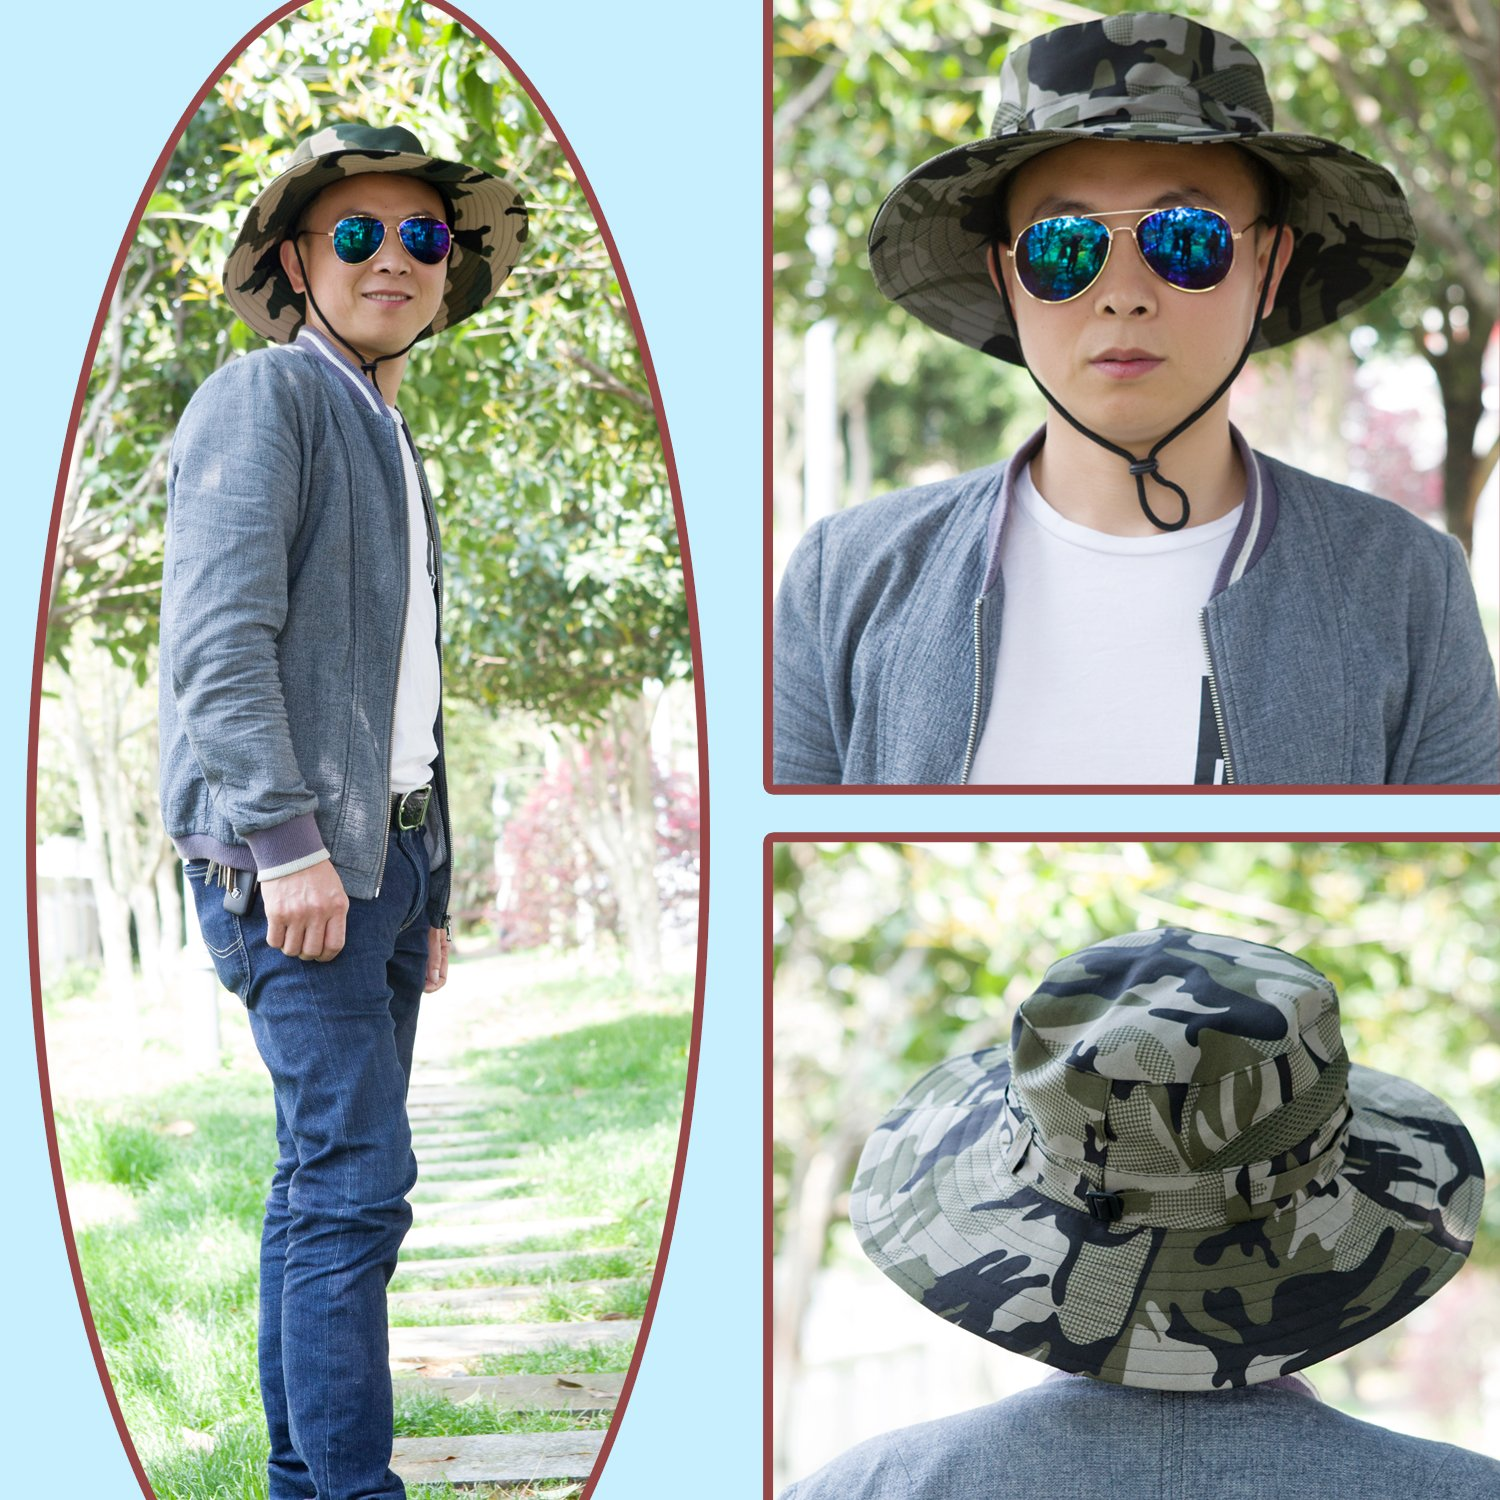 abe196352aed9 Amazon.com  Anleolife CP Amy Green Jungle Boonie Hat Travel Biking Boating  Hiking Beach Vacation Bucket Cap  Clothing